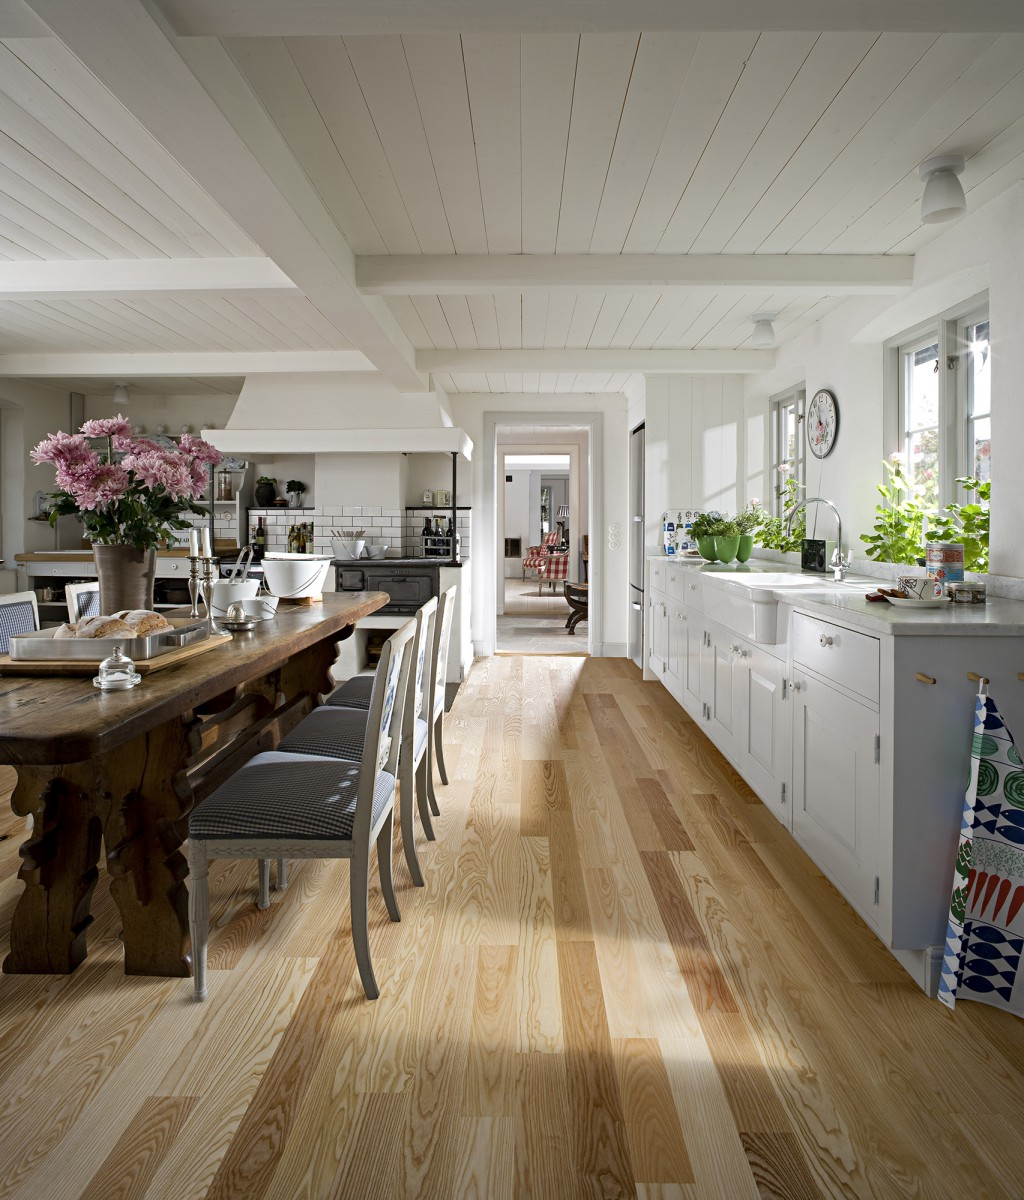 for the best prices on the widest selection of real wood flooring in the uk